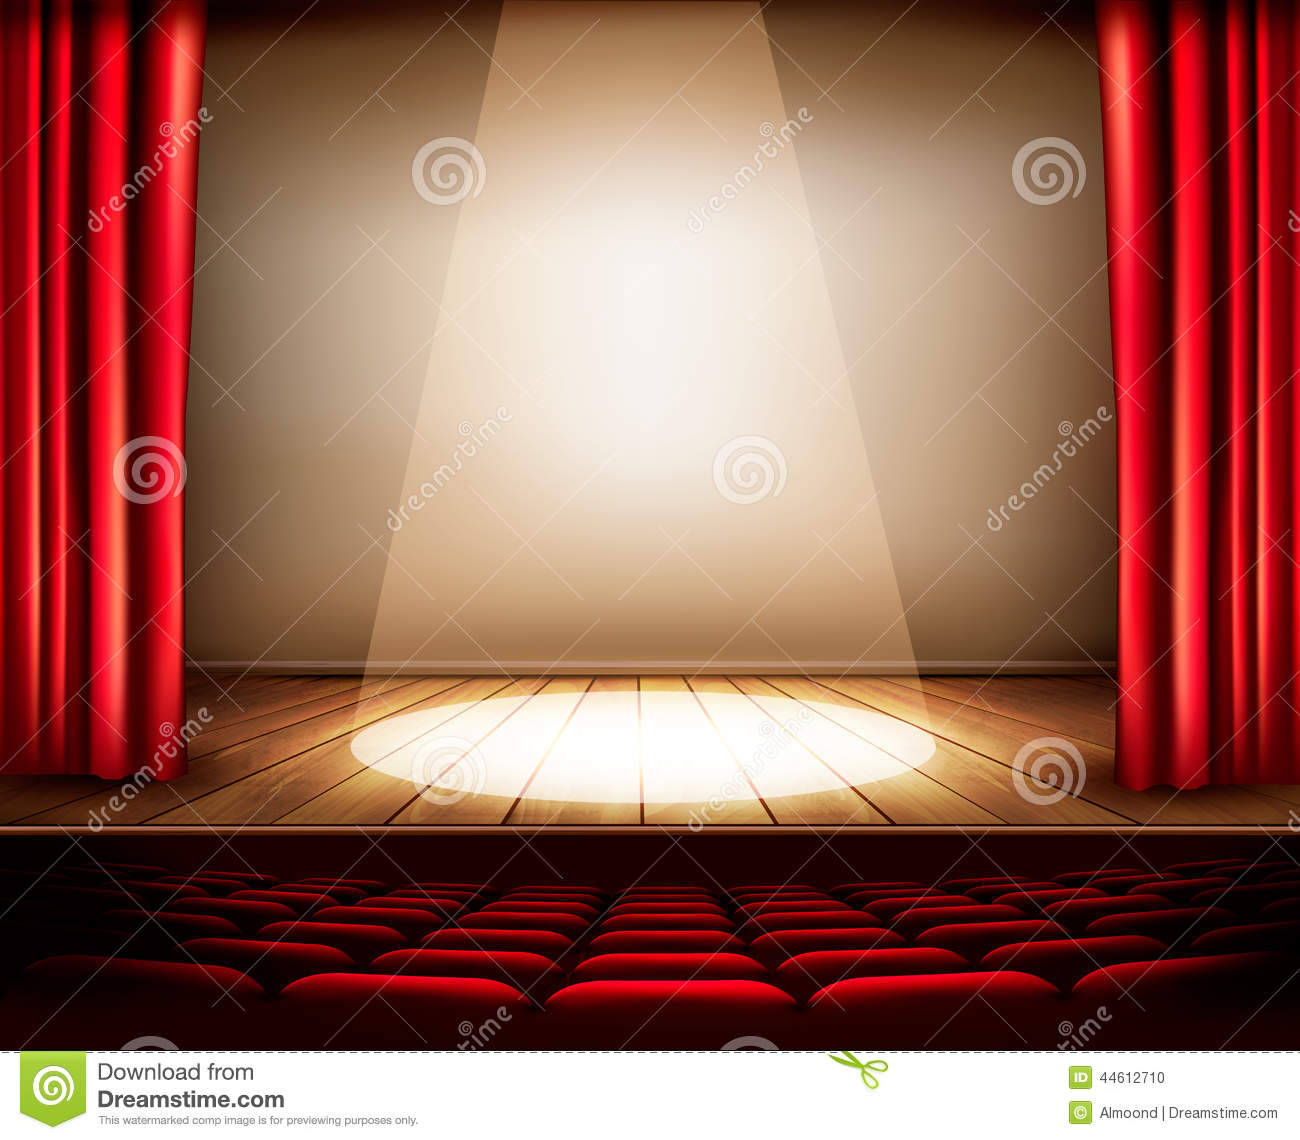 Image Result For Red Curtains With Spotlight